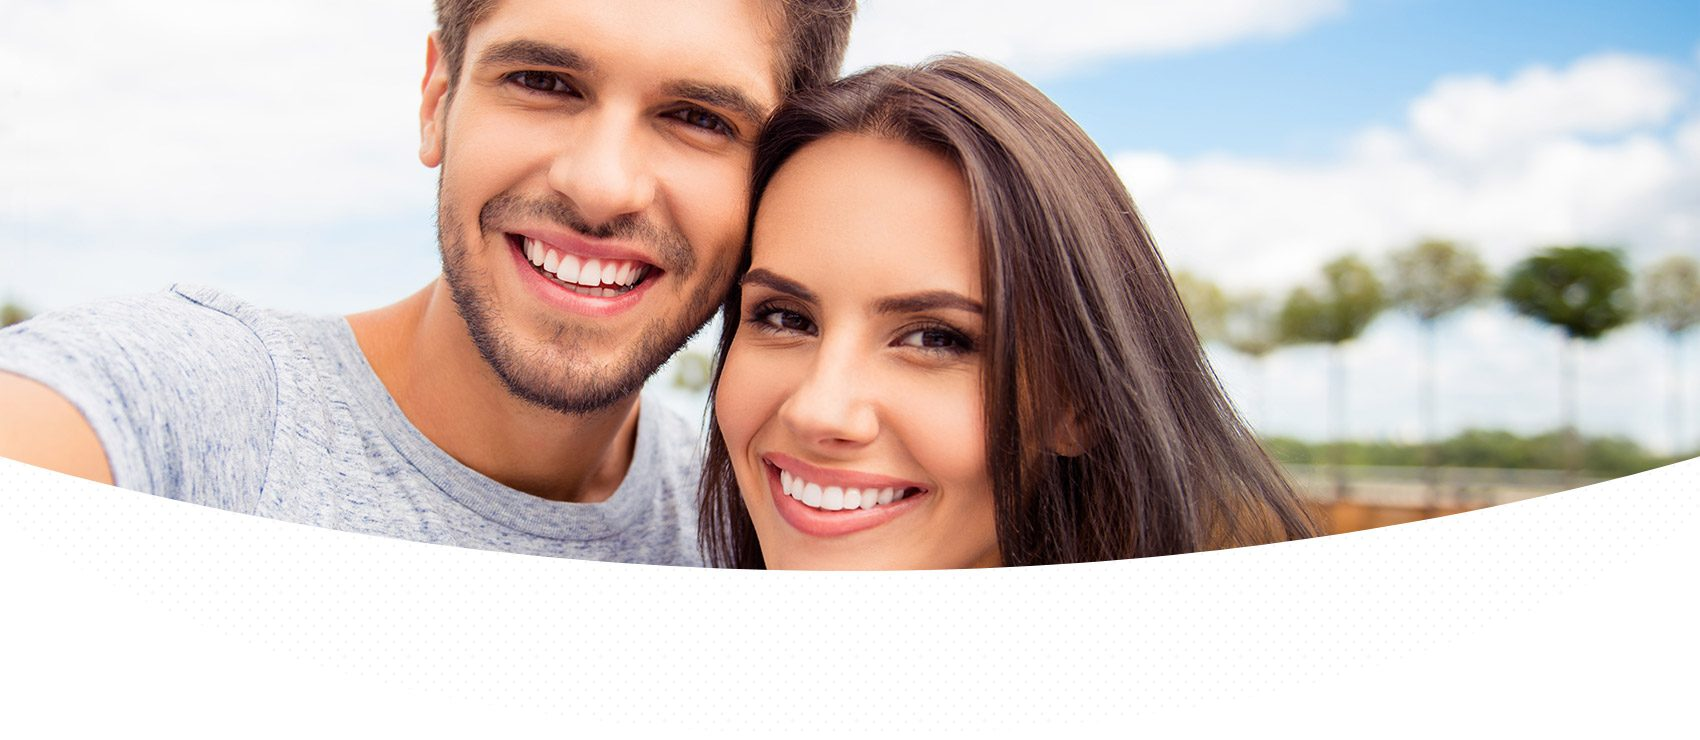 Make your smile beautiful with North Aurora Smiles